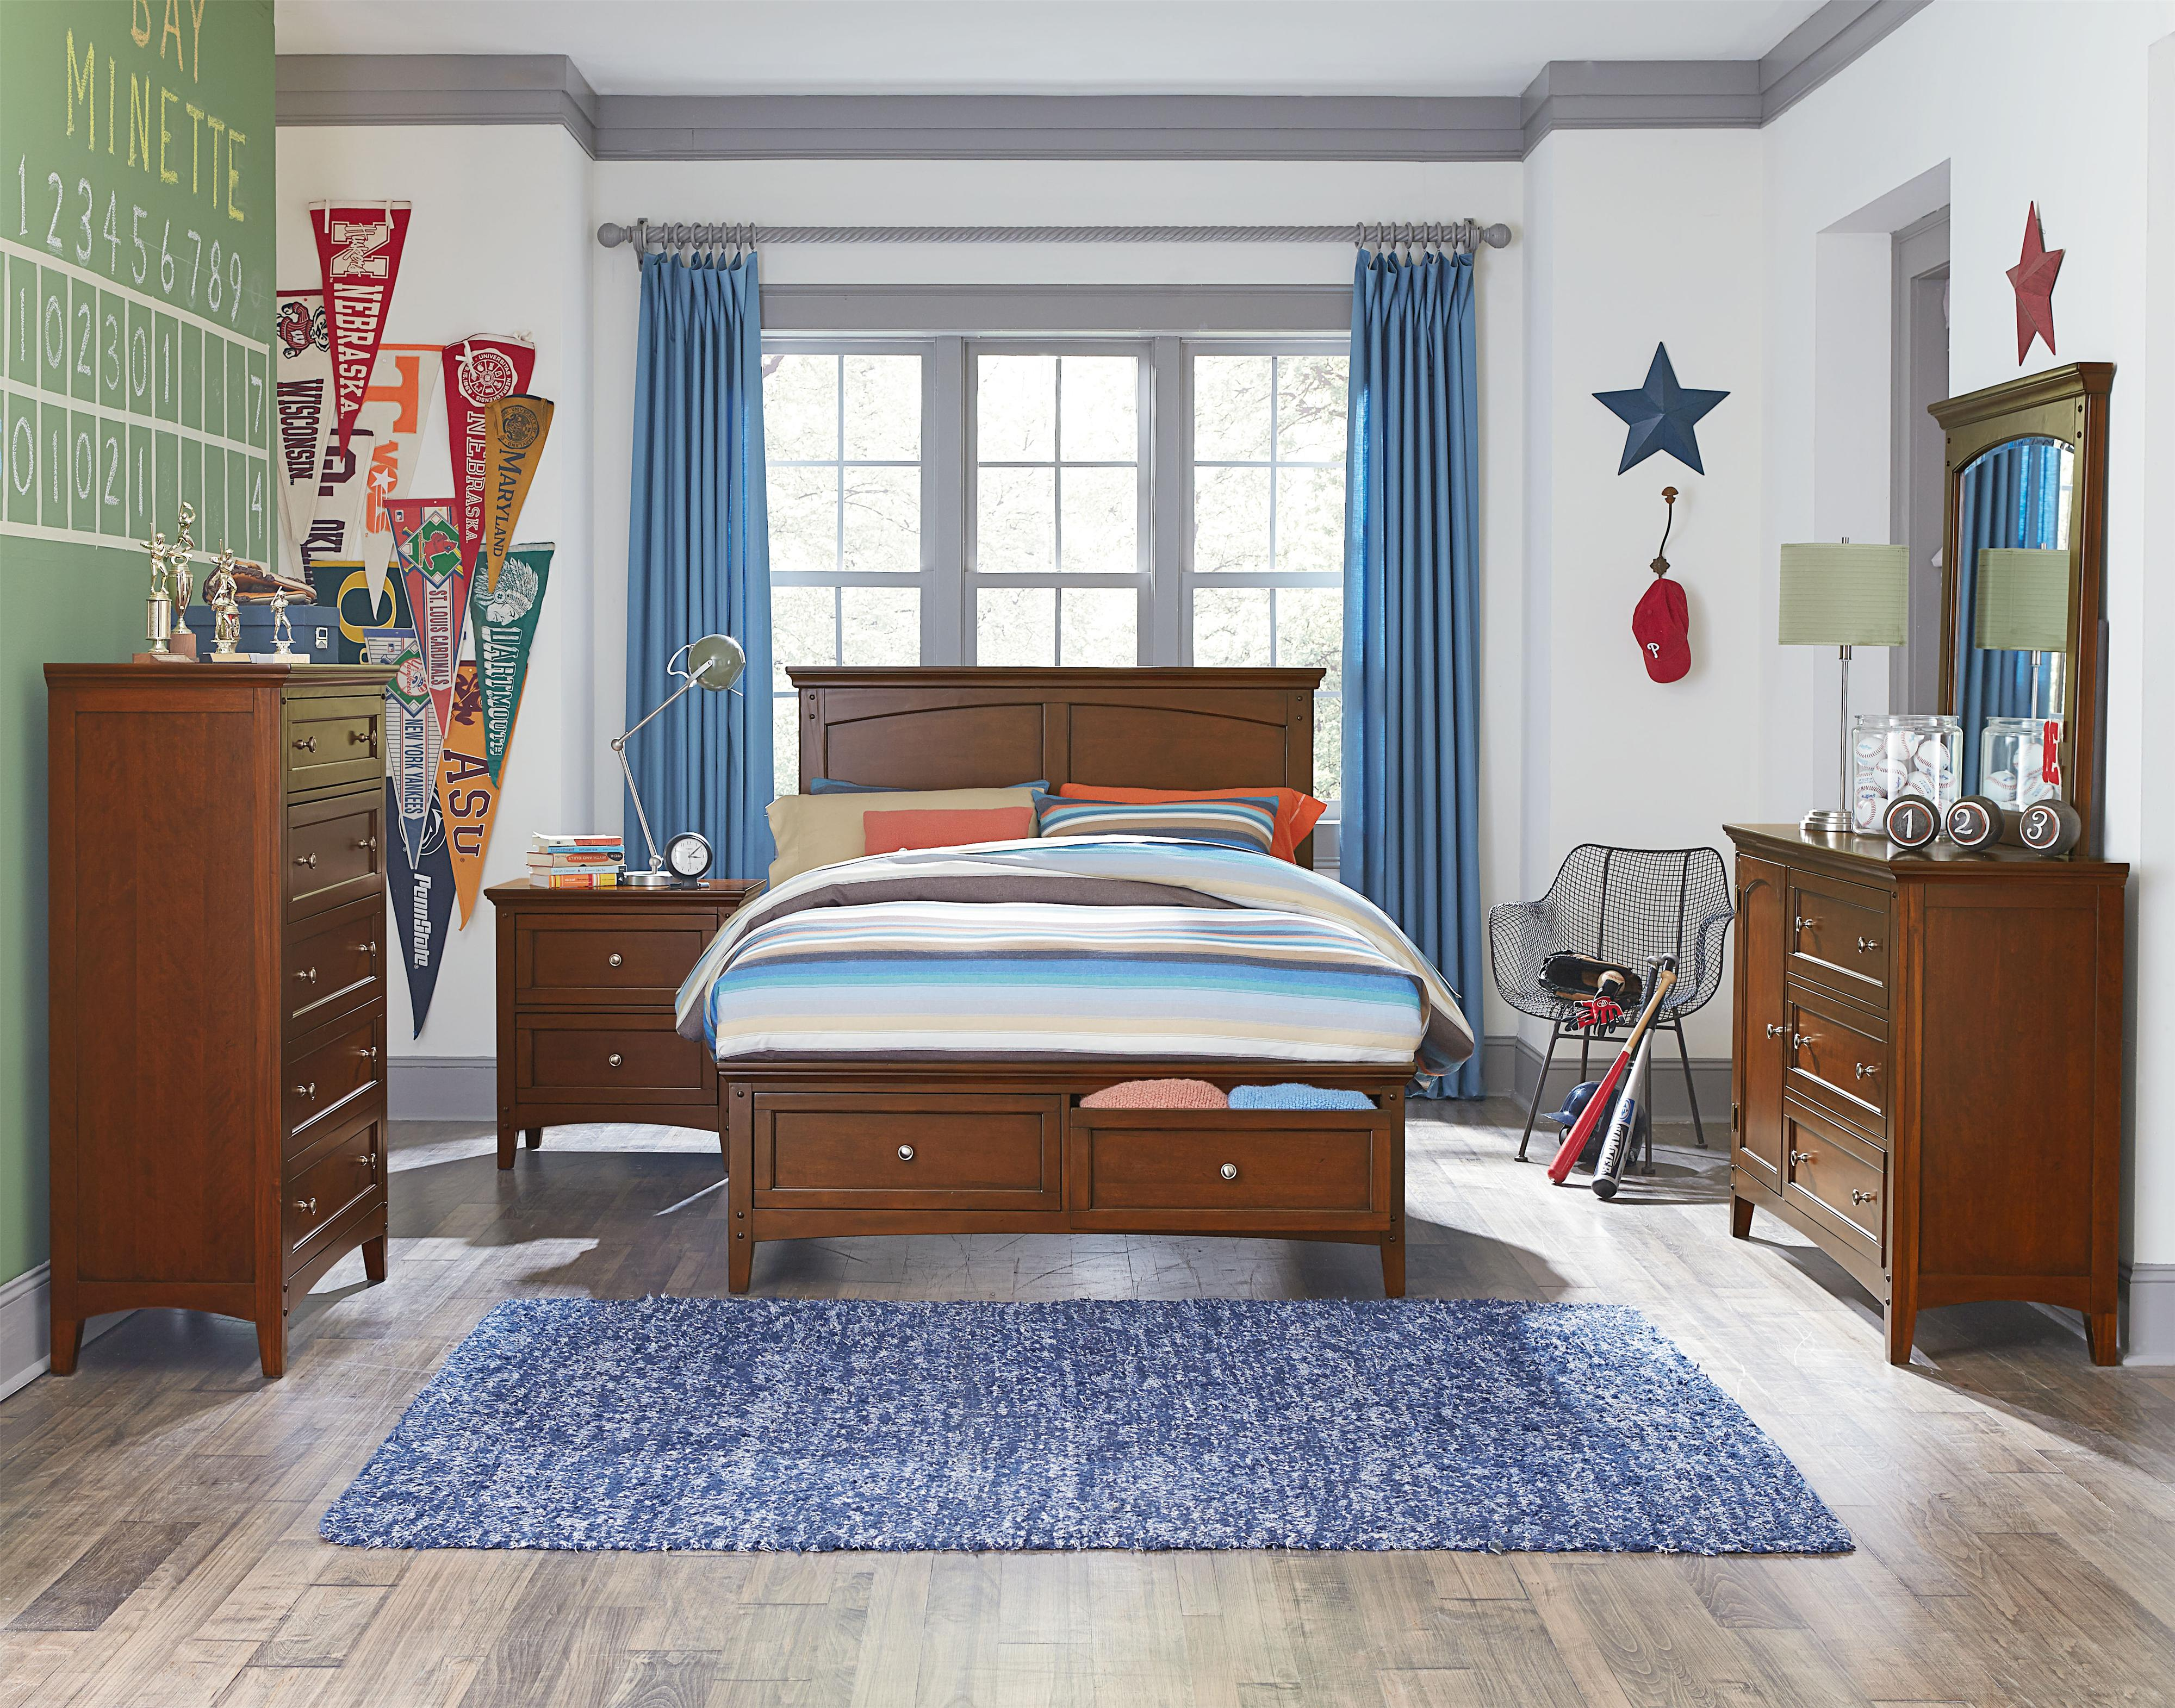 Standard Furniture Cooperstown Full Bedroom Group - Item Number: 93800 F Bedroom Group 3